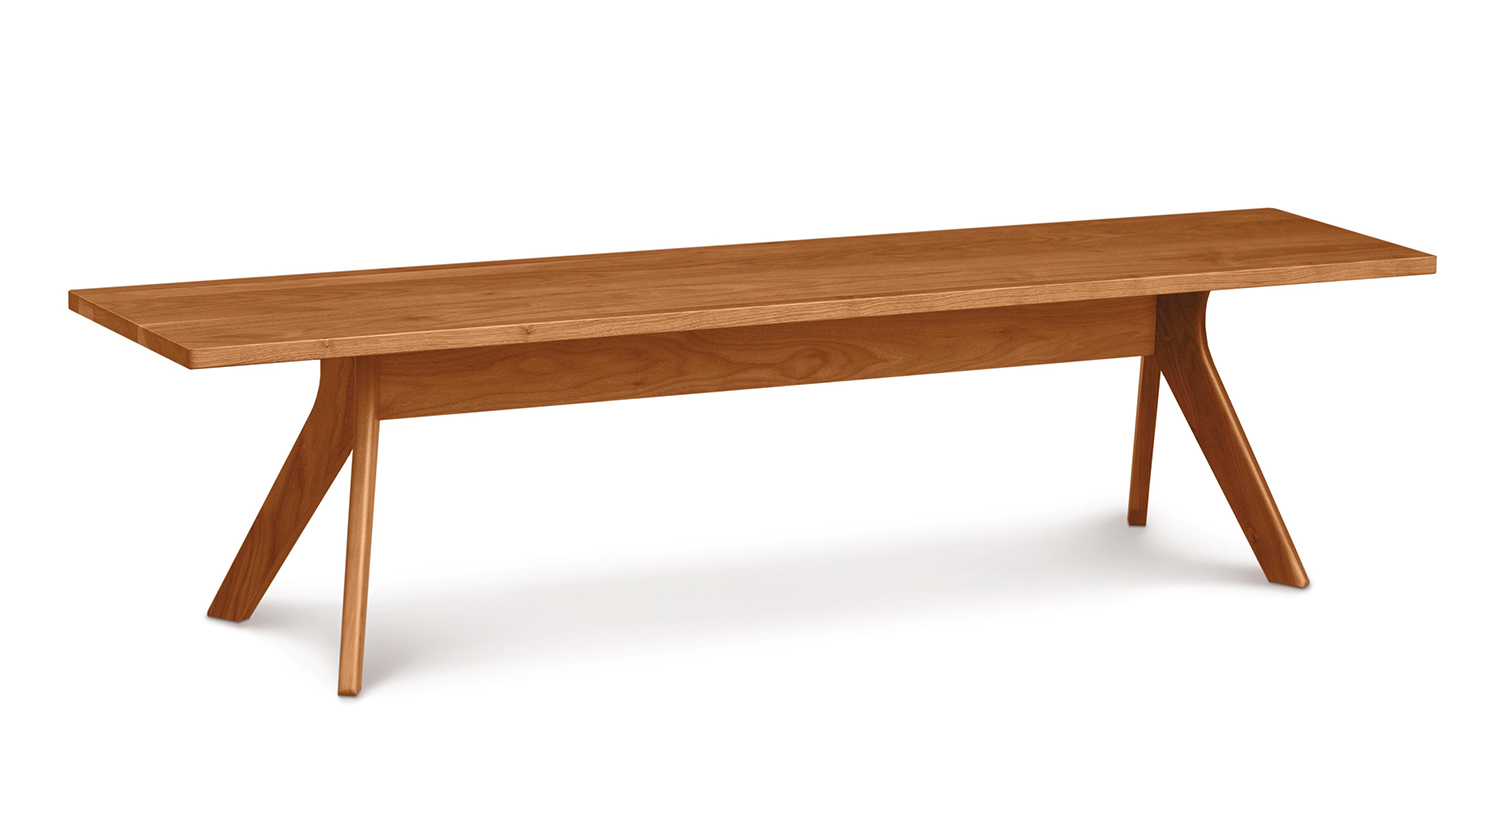 Charmant Audrey Dining Bench Audrey Dining Bench. Shown In Cherry